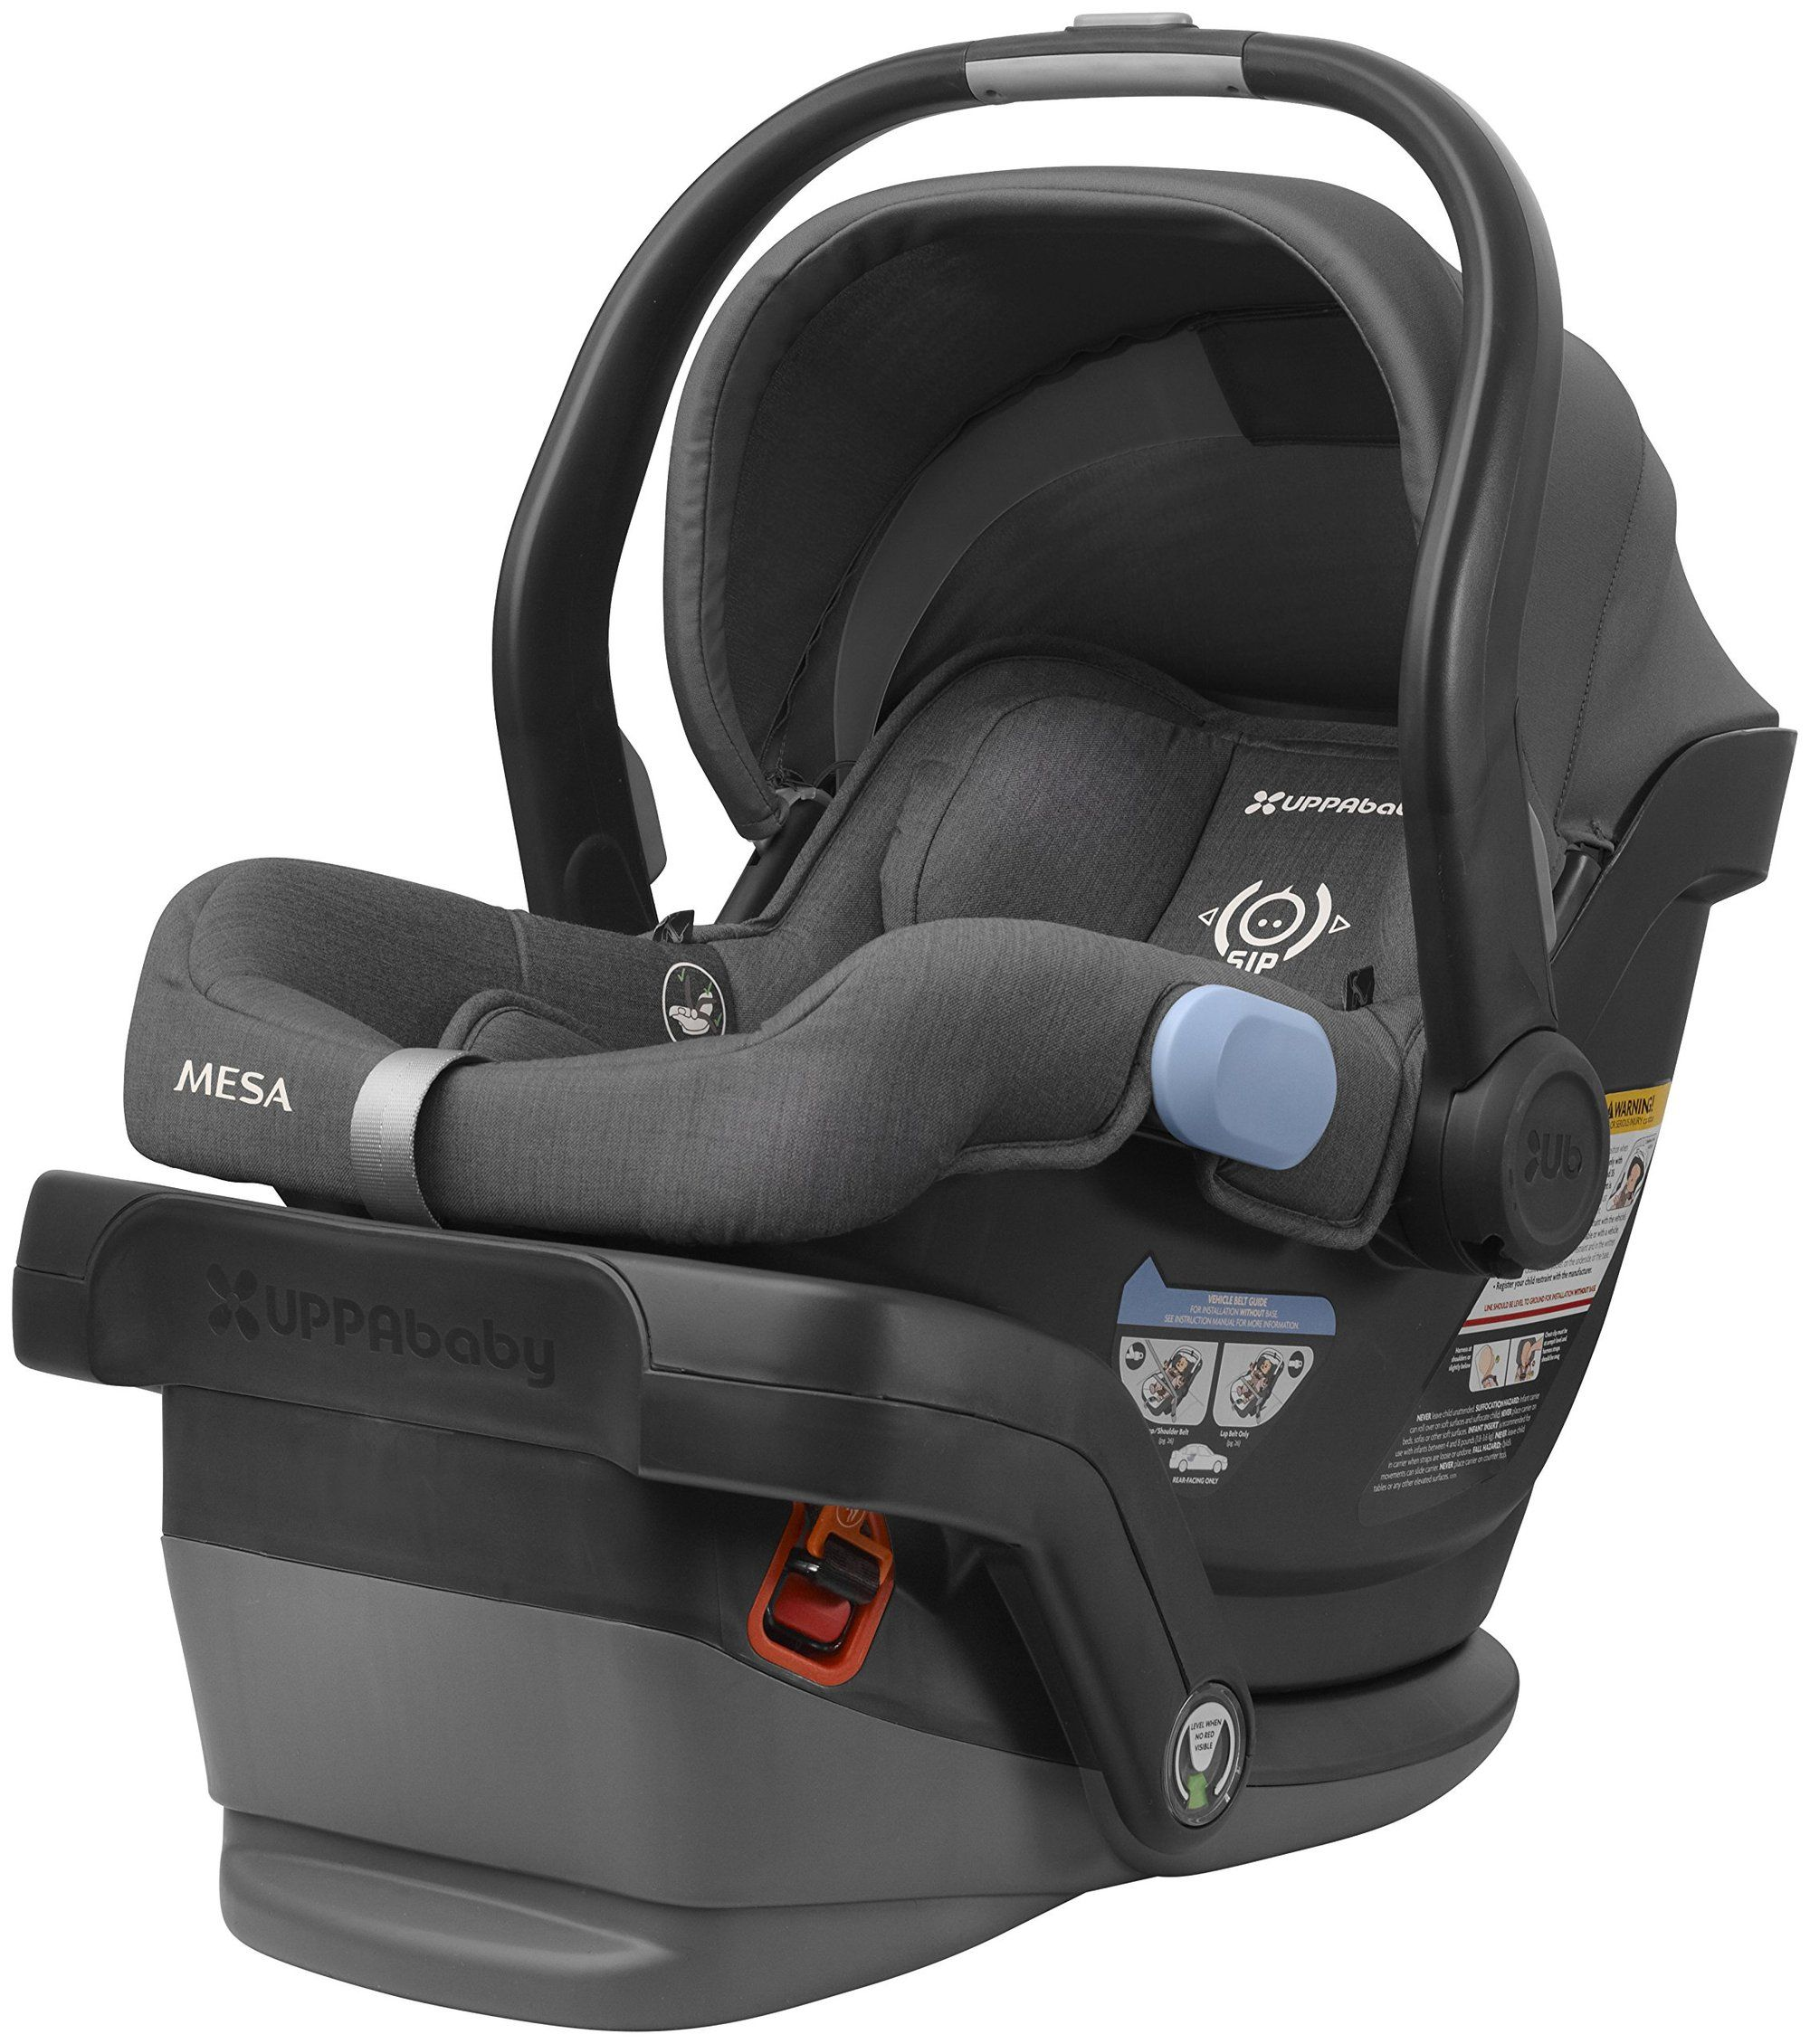 2018 UPPAbaby MESA Infant Car Seat Jordan (Charcoal